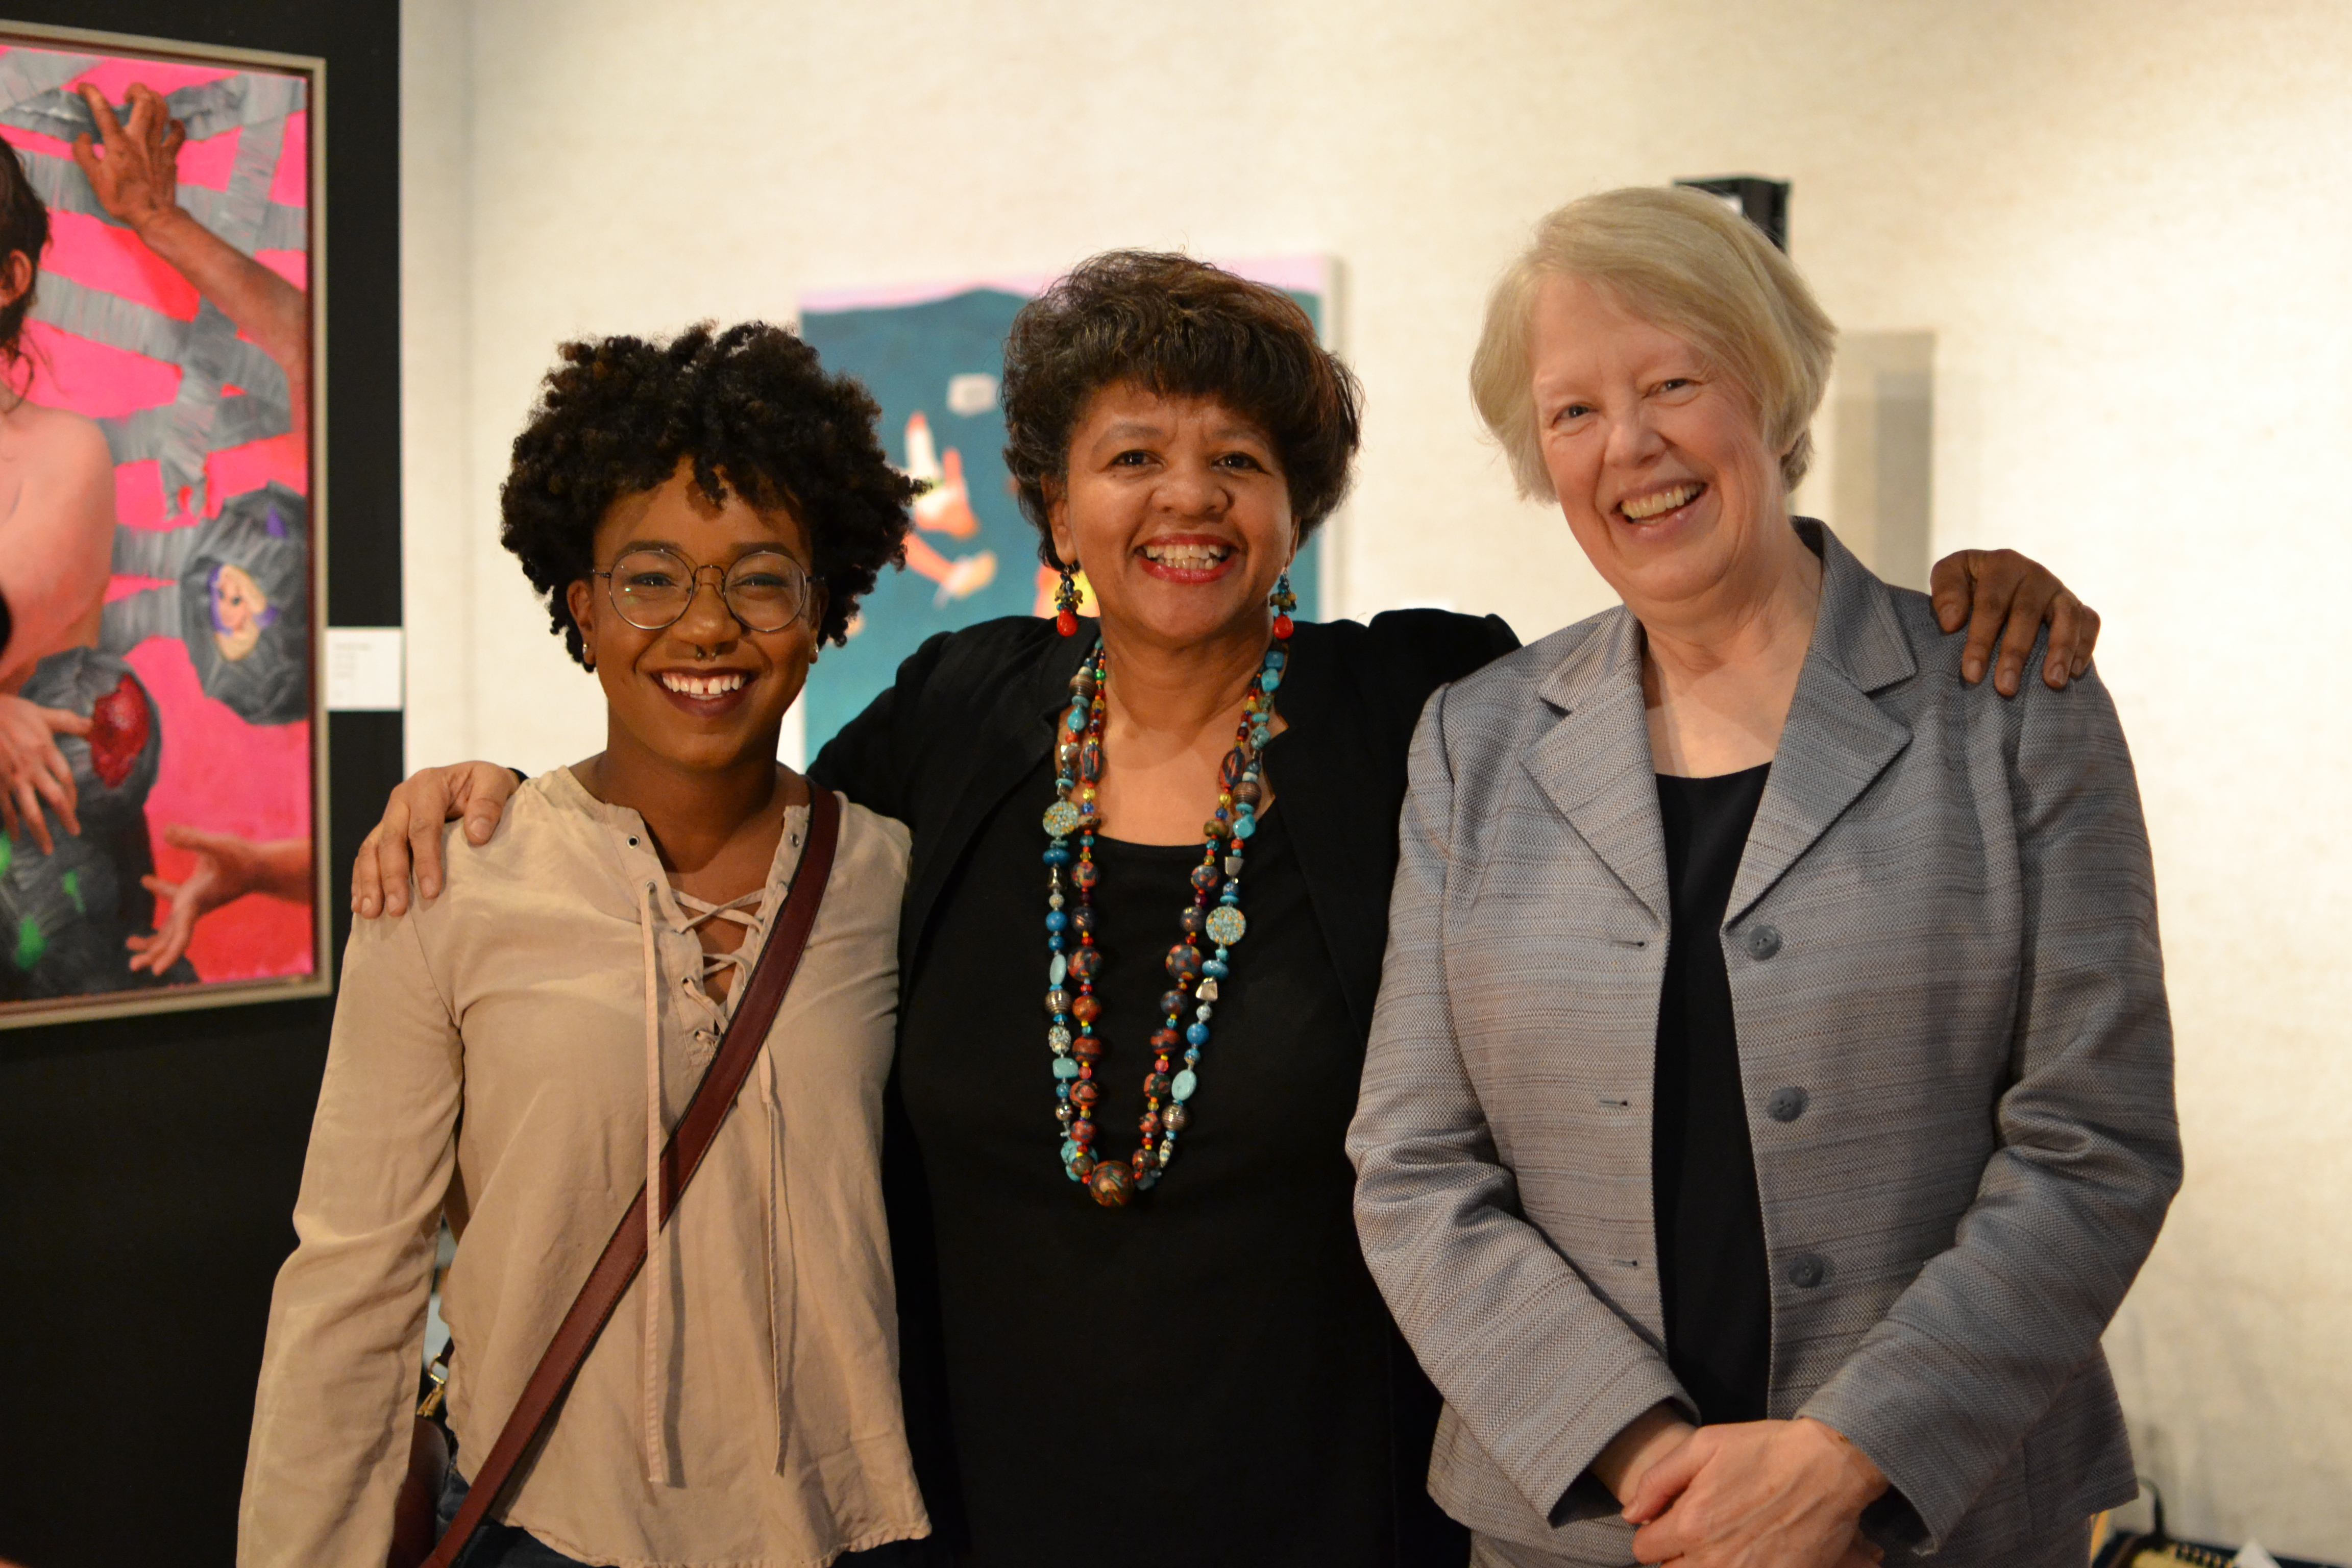 The New Masters: Women Artists of Northeast Ohio